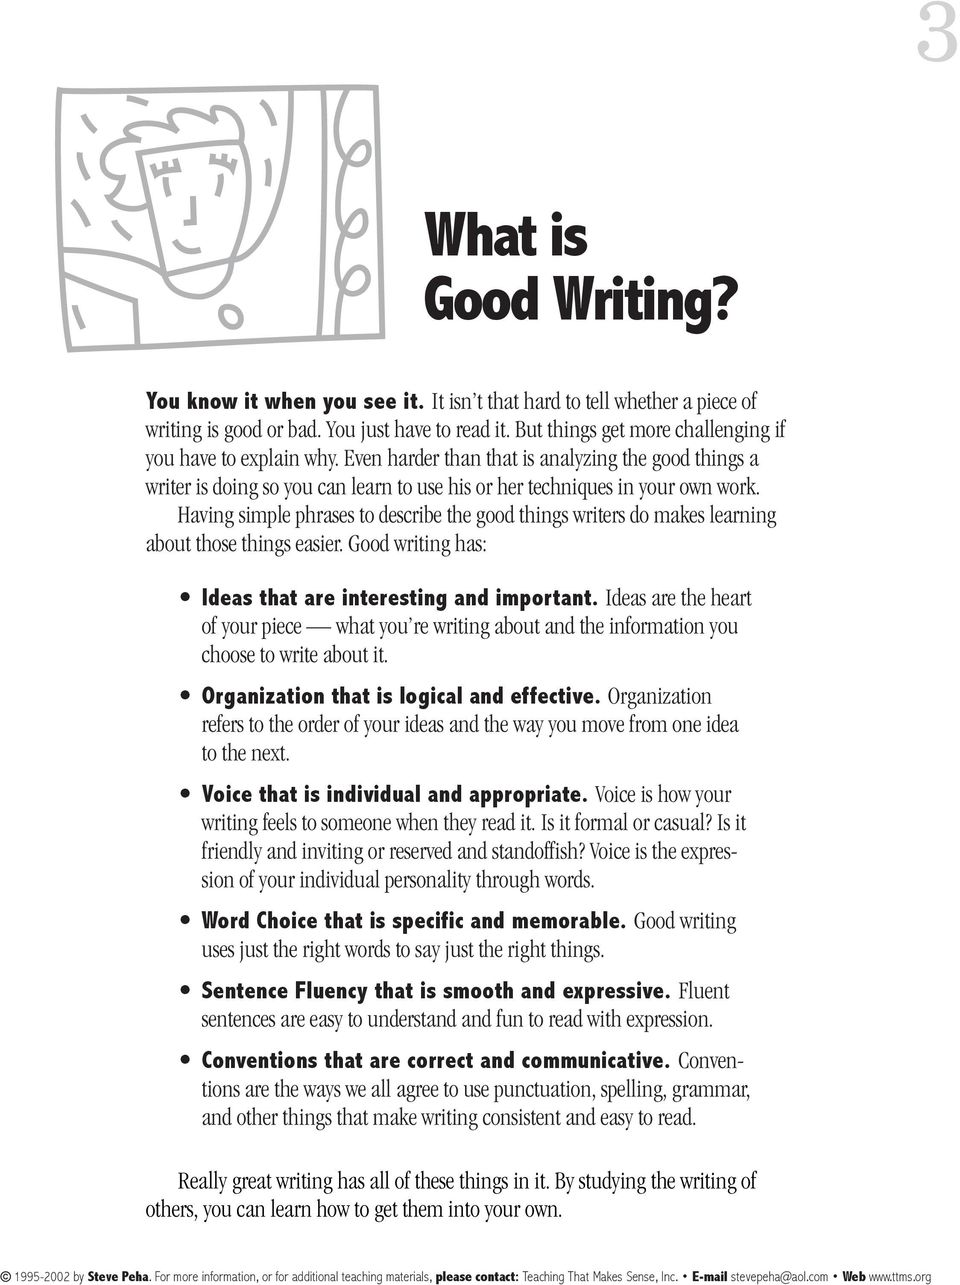 Having simple phrases to describe the good things writers do makes learning about those things easier. Good writing has: Ideas that are interesting and important.